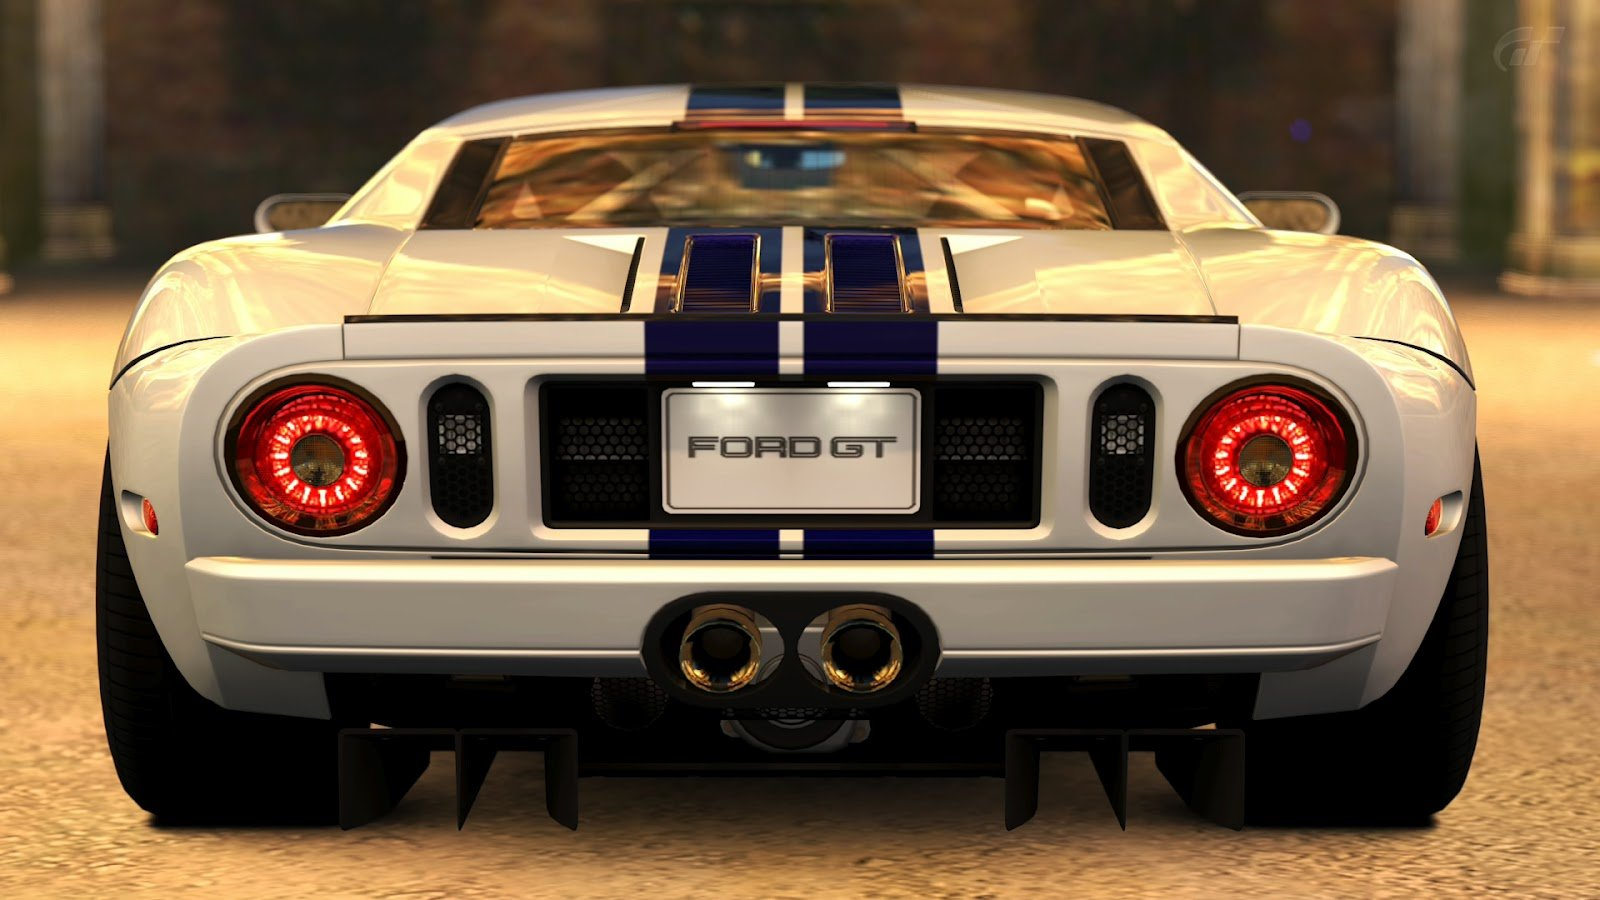 Ford GT Wallpaper HD  WallpaperSafari